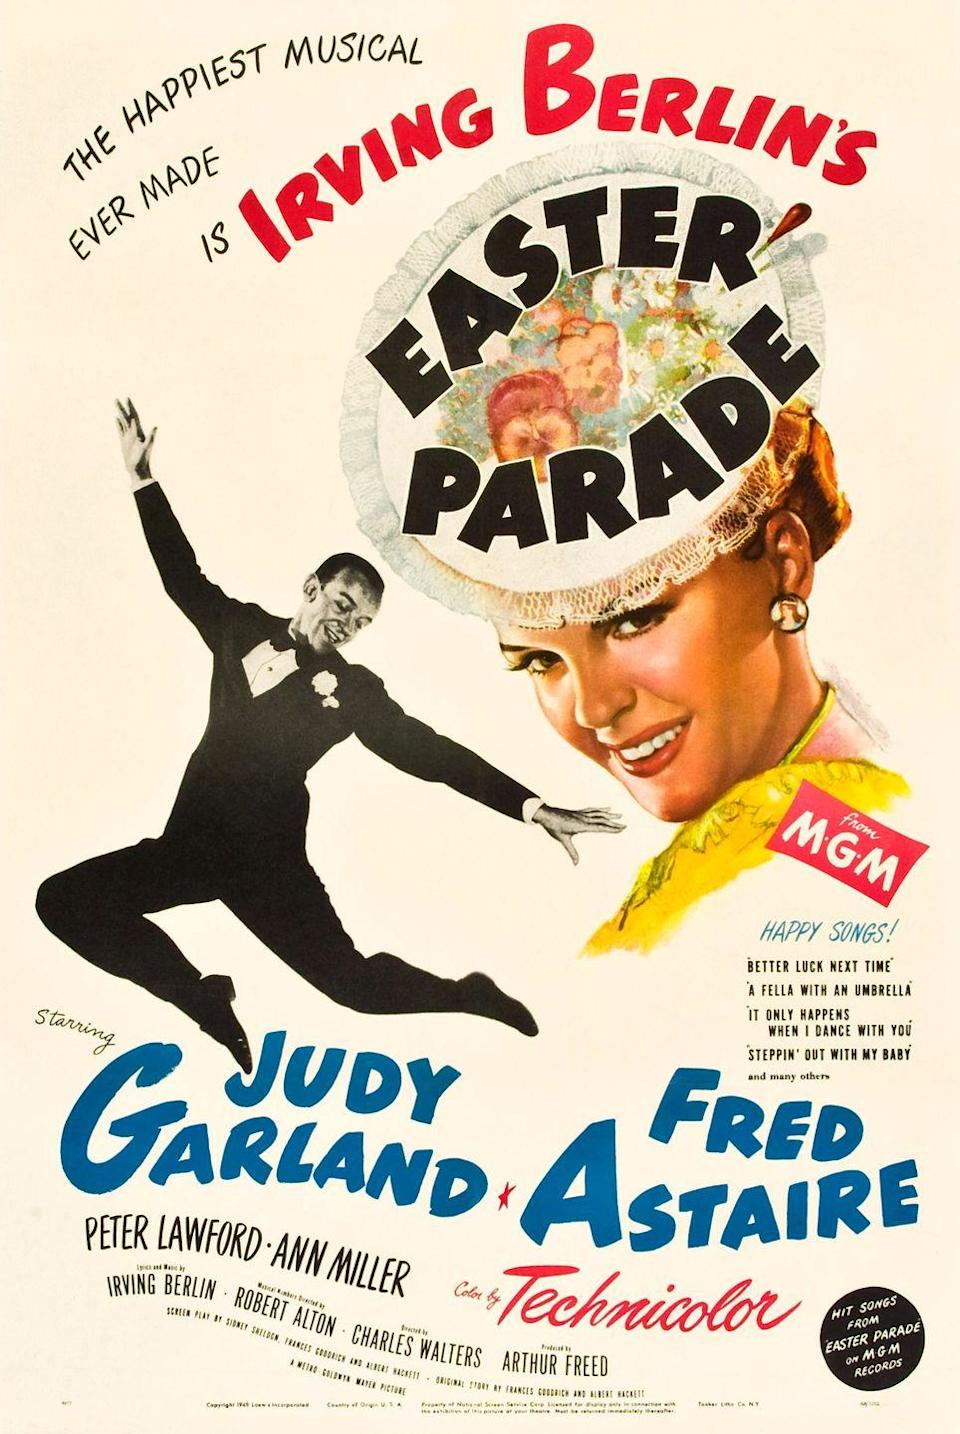 """<p>The classic combo of Fred Astaire and Judy Garland will leave you dazzled and entertained as this movie takes you back to a glamorous era of old-school Hollywood. </p><p><a class=""""link rapid-noclick-resp"""" href=""""https://www.amazon.com/gp/video/detail/B00C2Y5BLK/ref=atv_dl_rdr?tag=syn-yahoo-20&ascsubtag=%5Bartid%7C10070.g.16643651%5Bsrc%7Cyahoo-us"""" rel=""""nofollow noopener"""" target=""""_blank"""" data-ylk=""""slk:STREAM NOW"""">STREAM NOW </a></p>"""